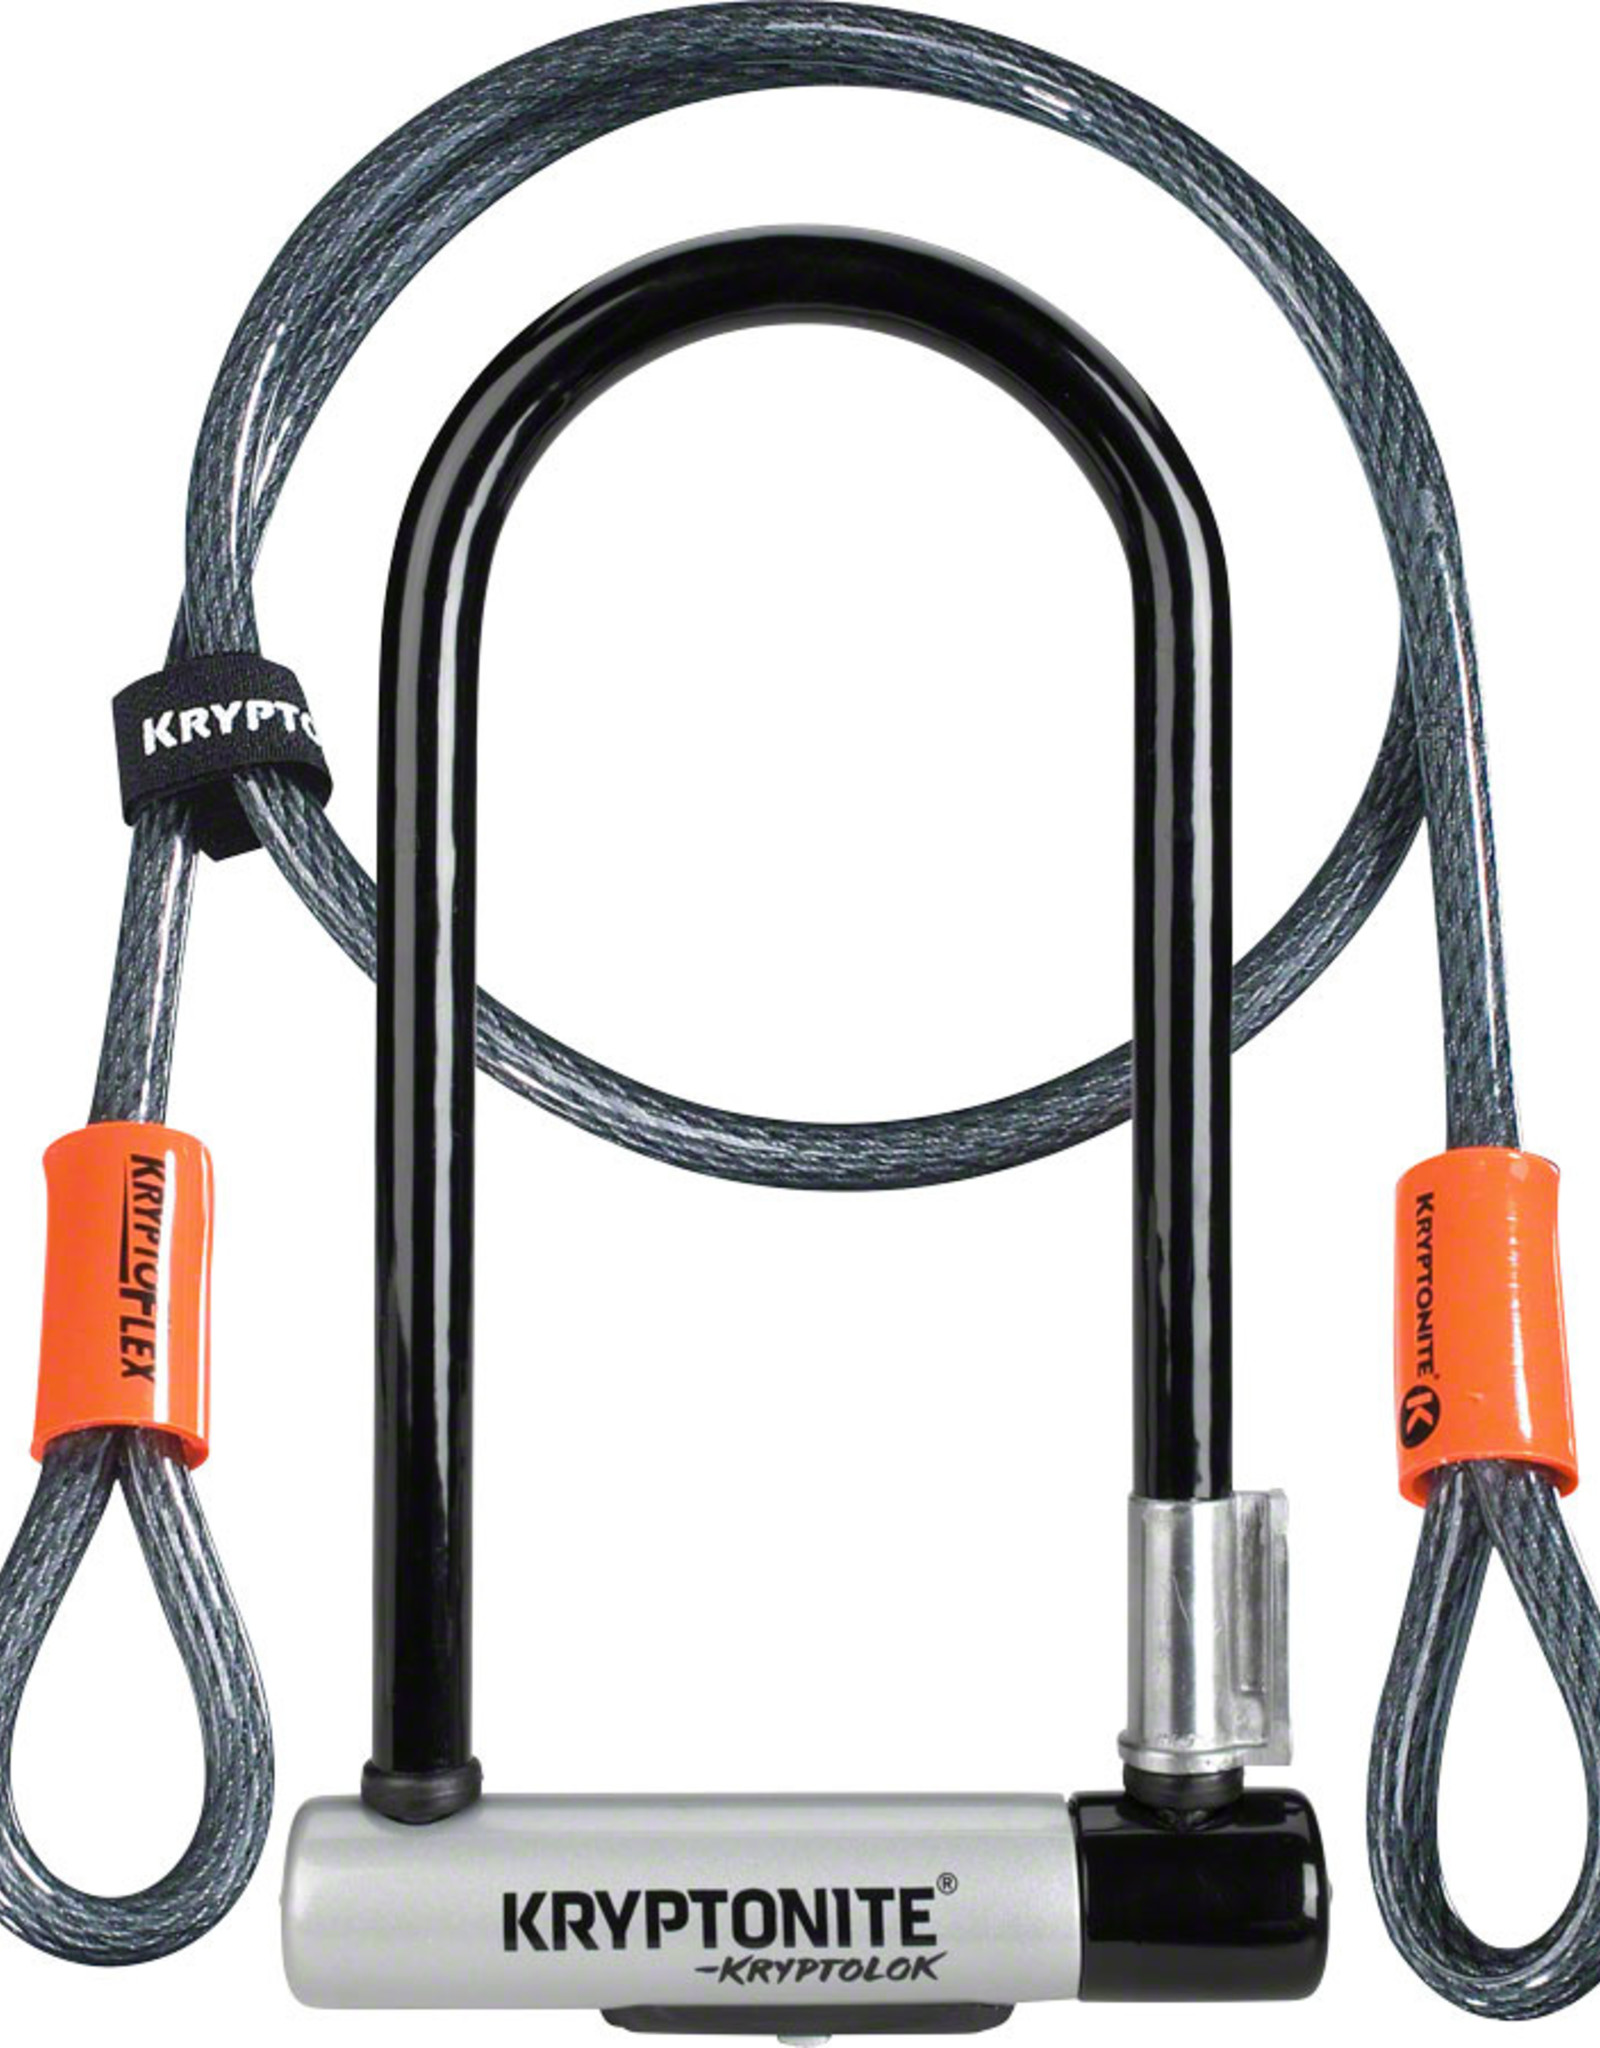 Kryptonite KryptoLok Series 2 STD U-Lock with 4' Flex Cable and Bracket